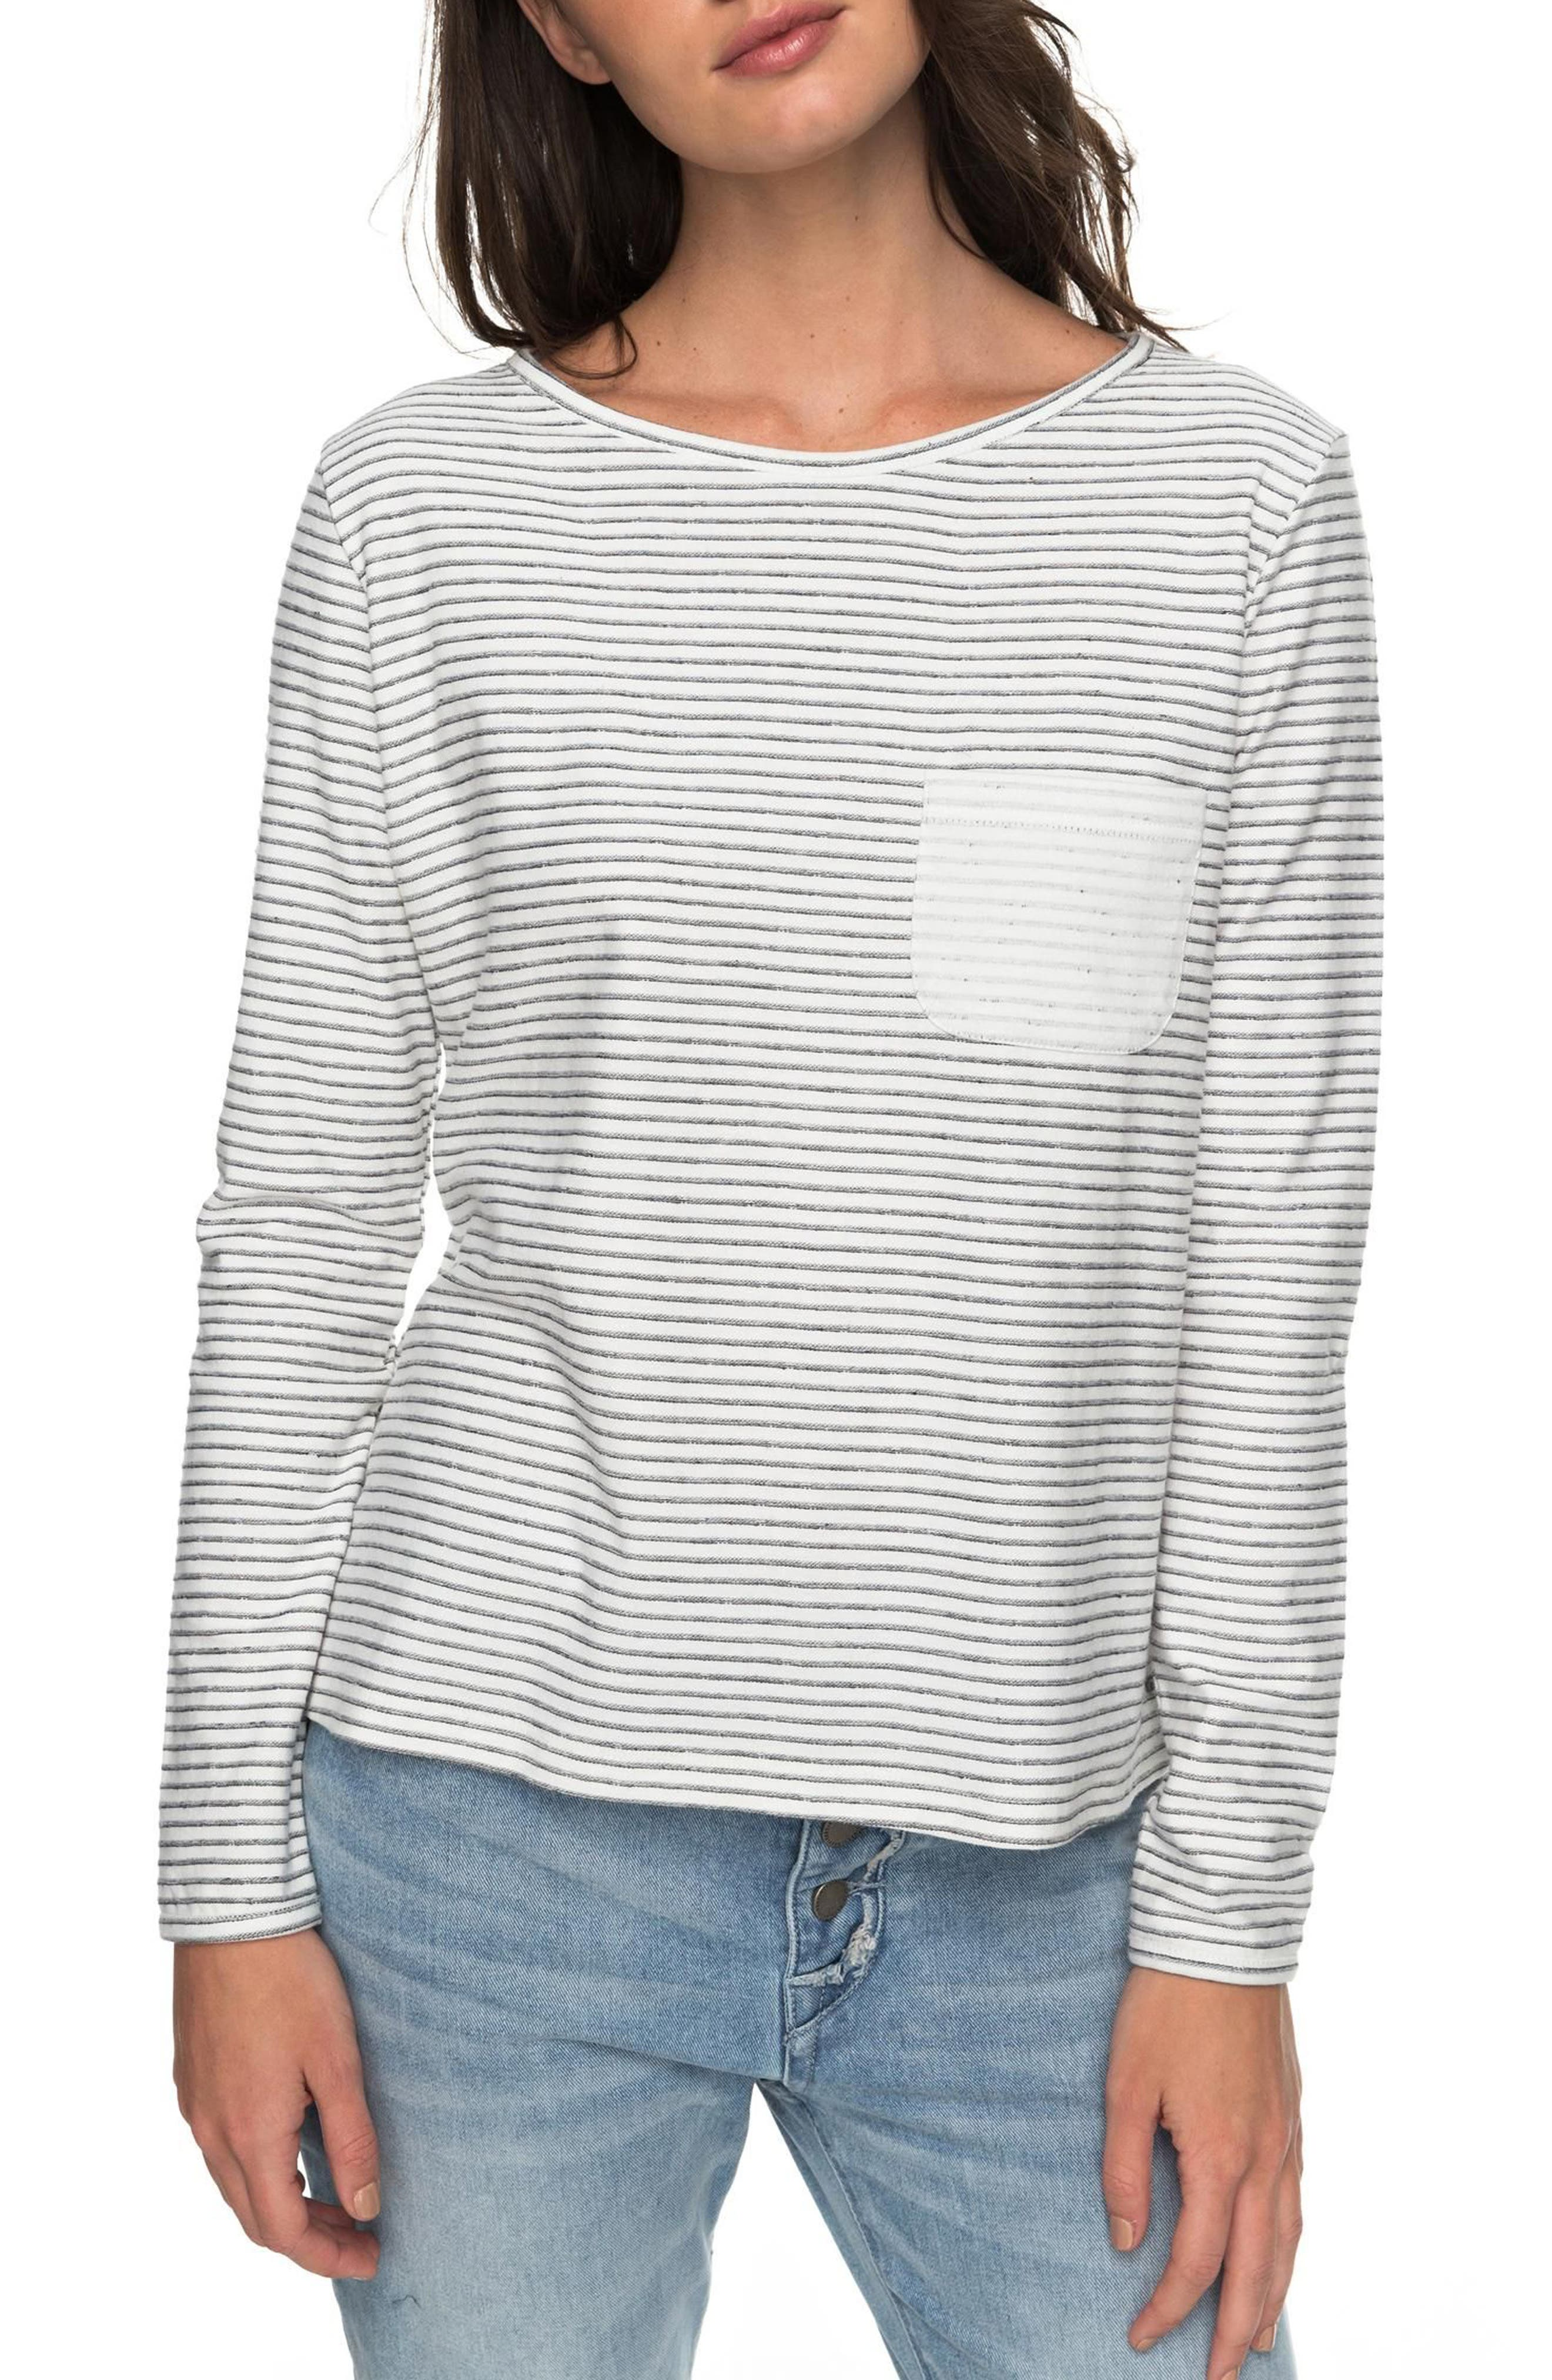 Slice of Heaven Side Tie Top,                             Main thumbnail 1, color,                             Marshmallow